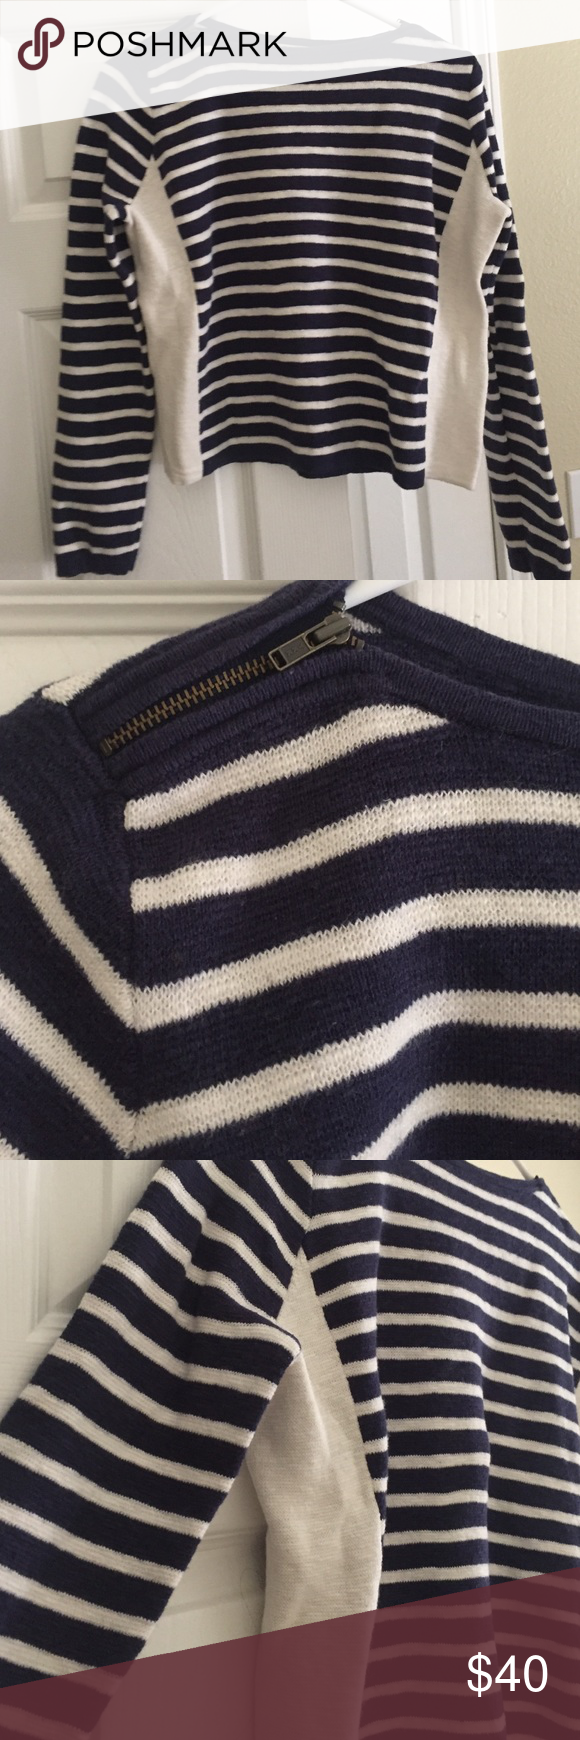 Madewell Navy and White Striped Sweater | Madewell and Summer sweaters